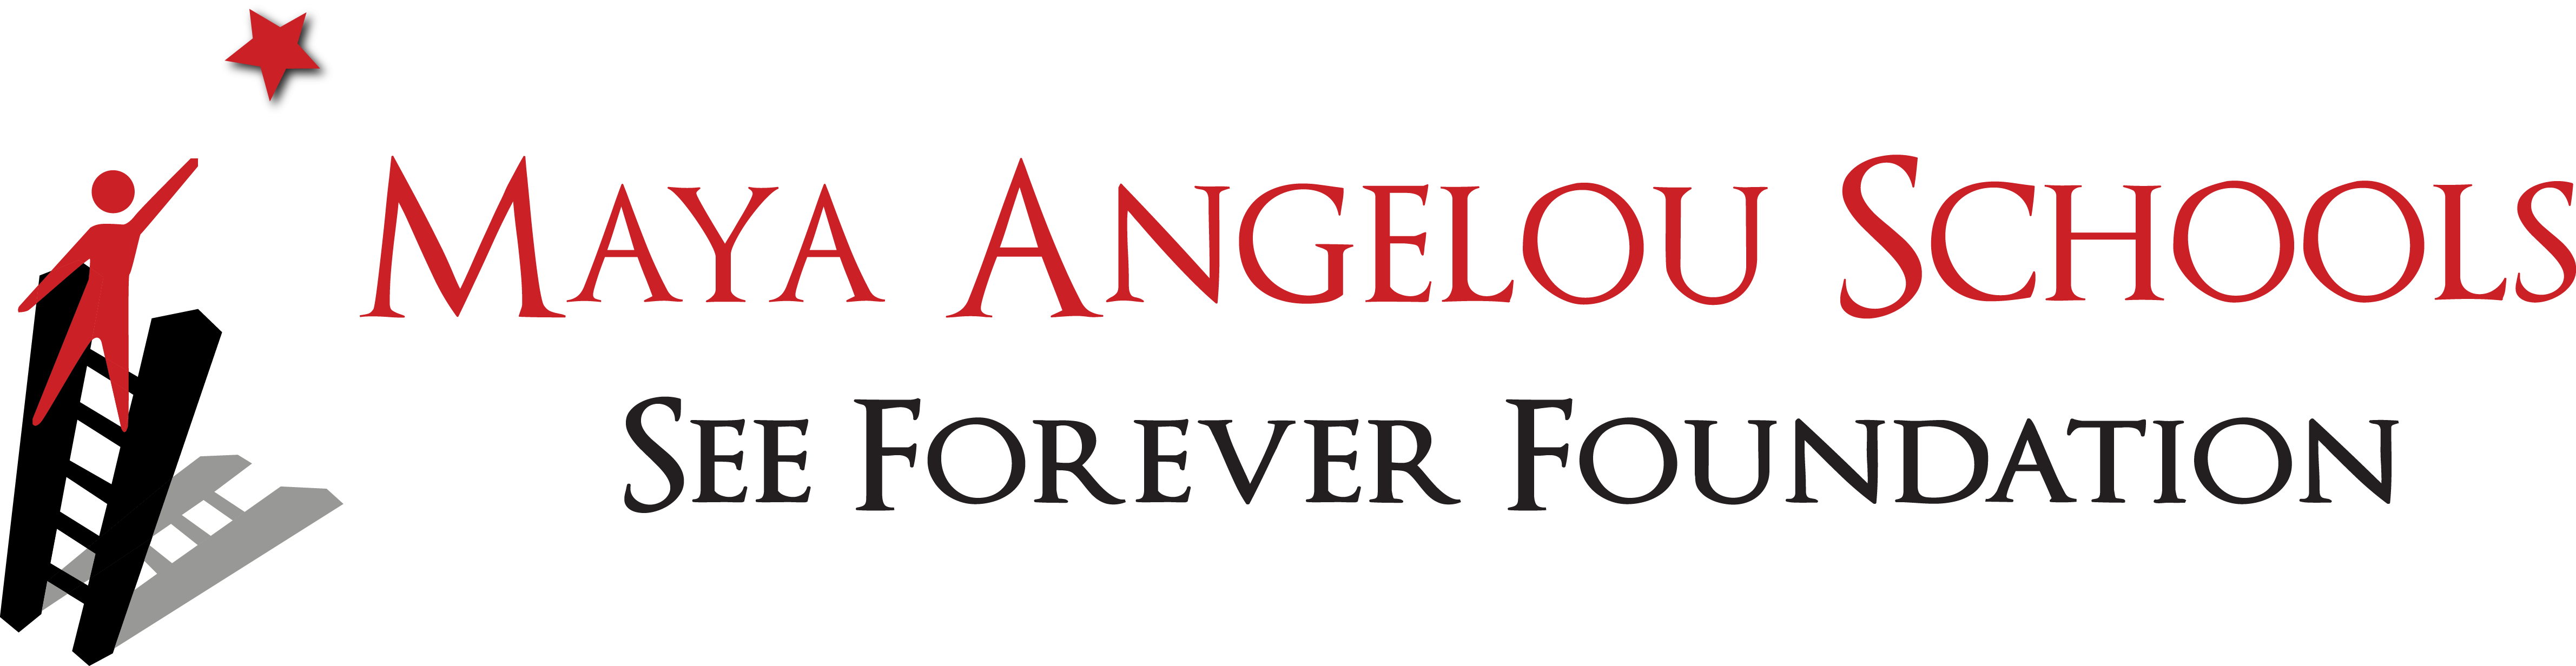 Maya Angelou Public Charter Schools - See Forever Foundation